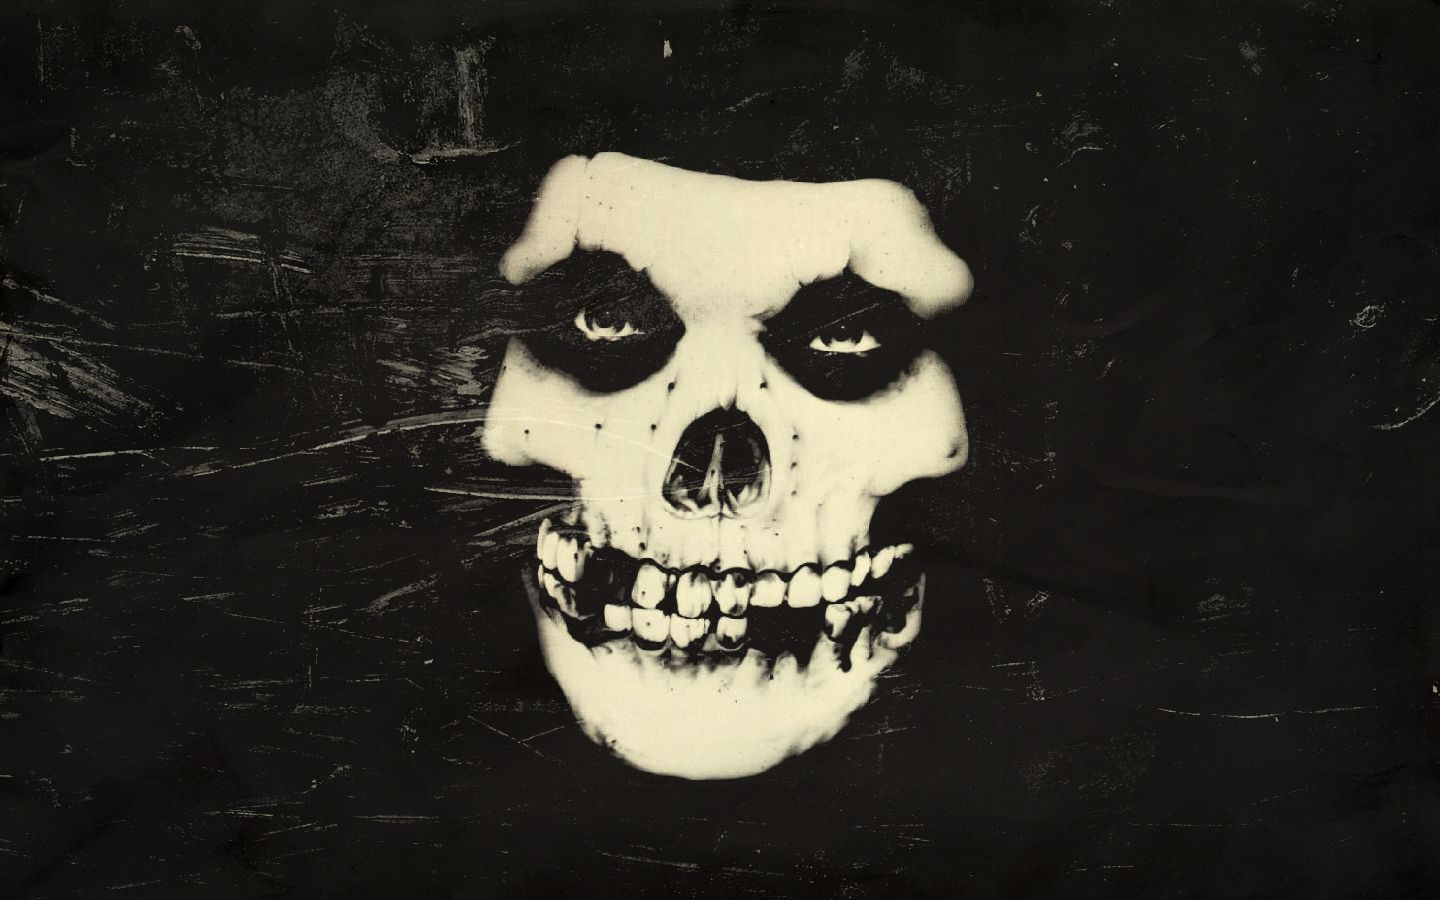 Misfits Wallpaper Hd Wallpapersafari Skull Painting Misfits